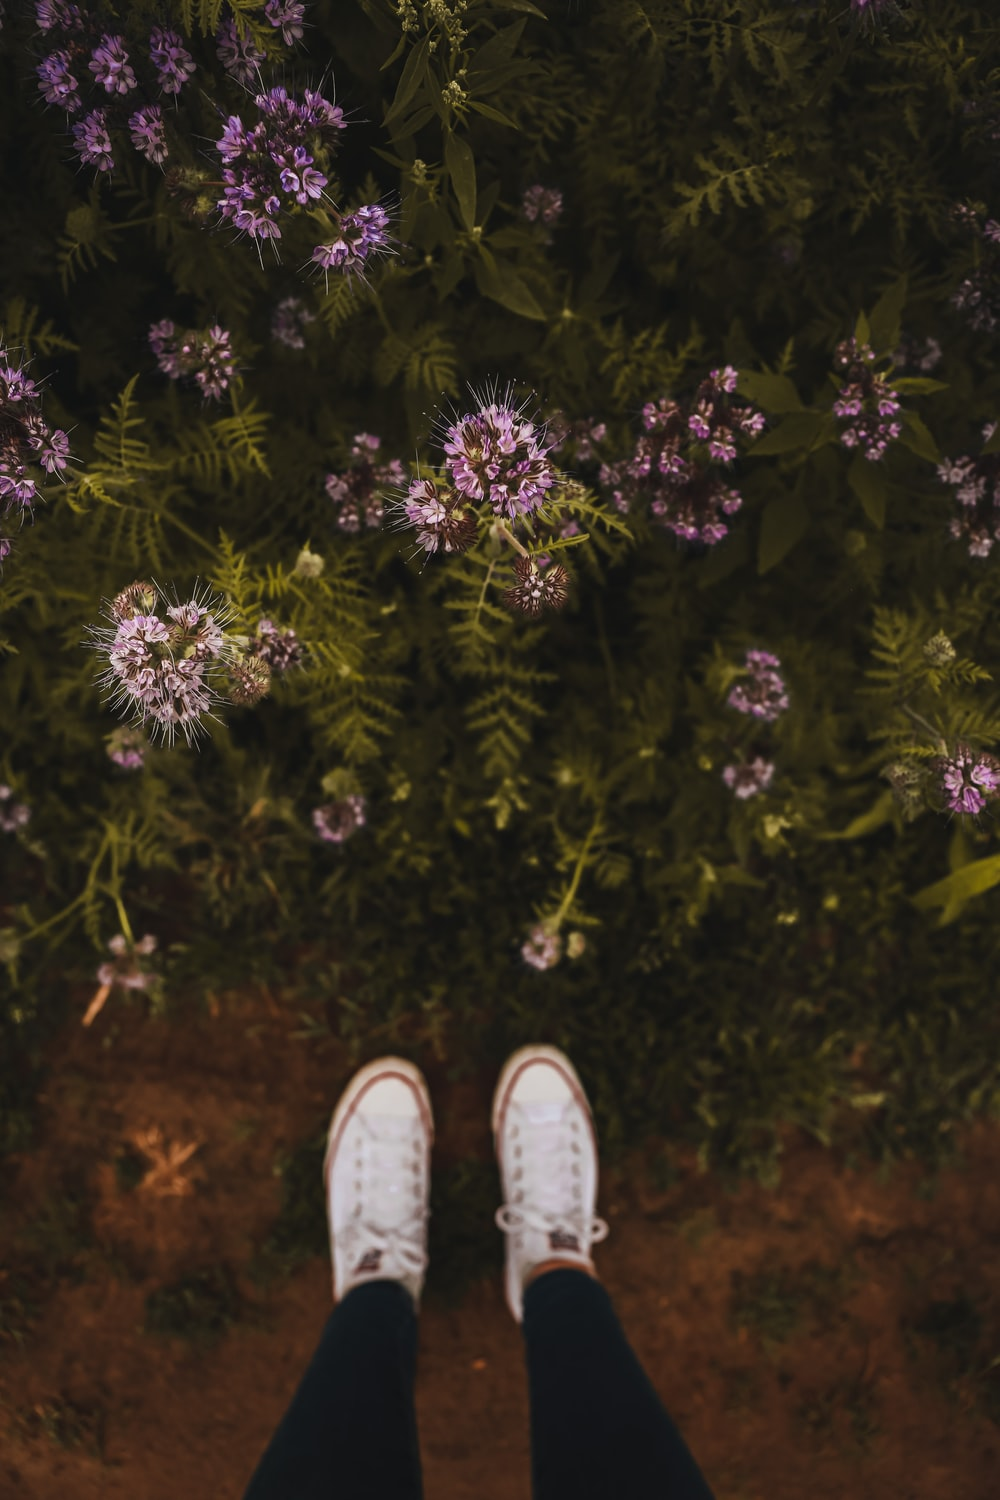 person wearing white sneakers standing on purple flower field during daytime